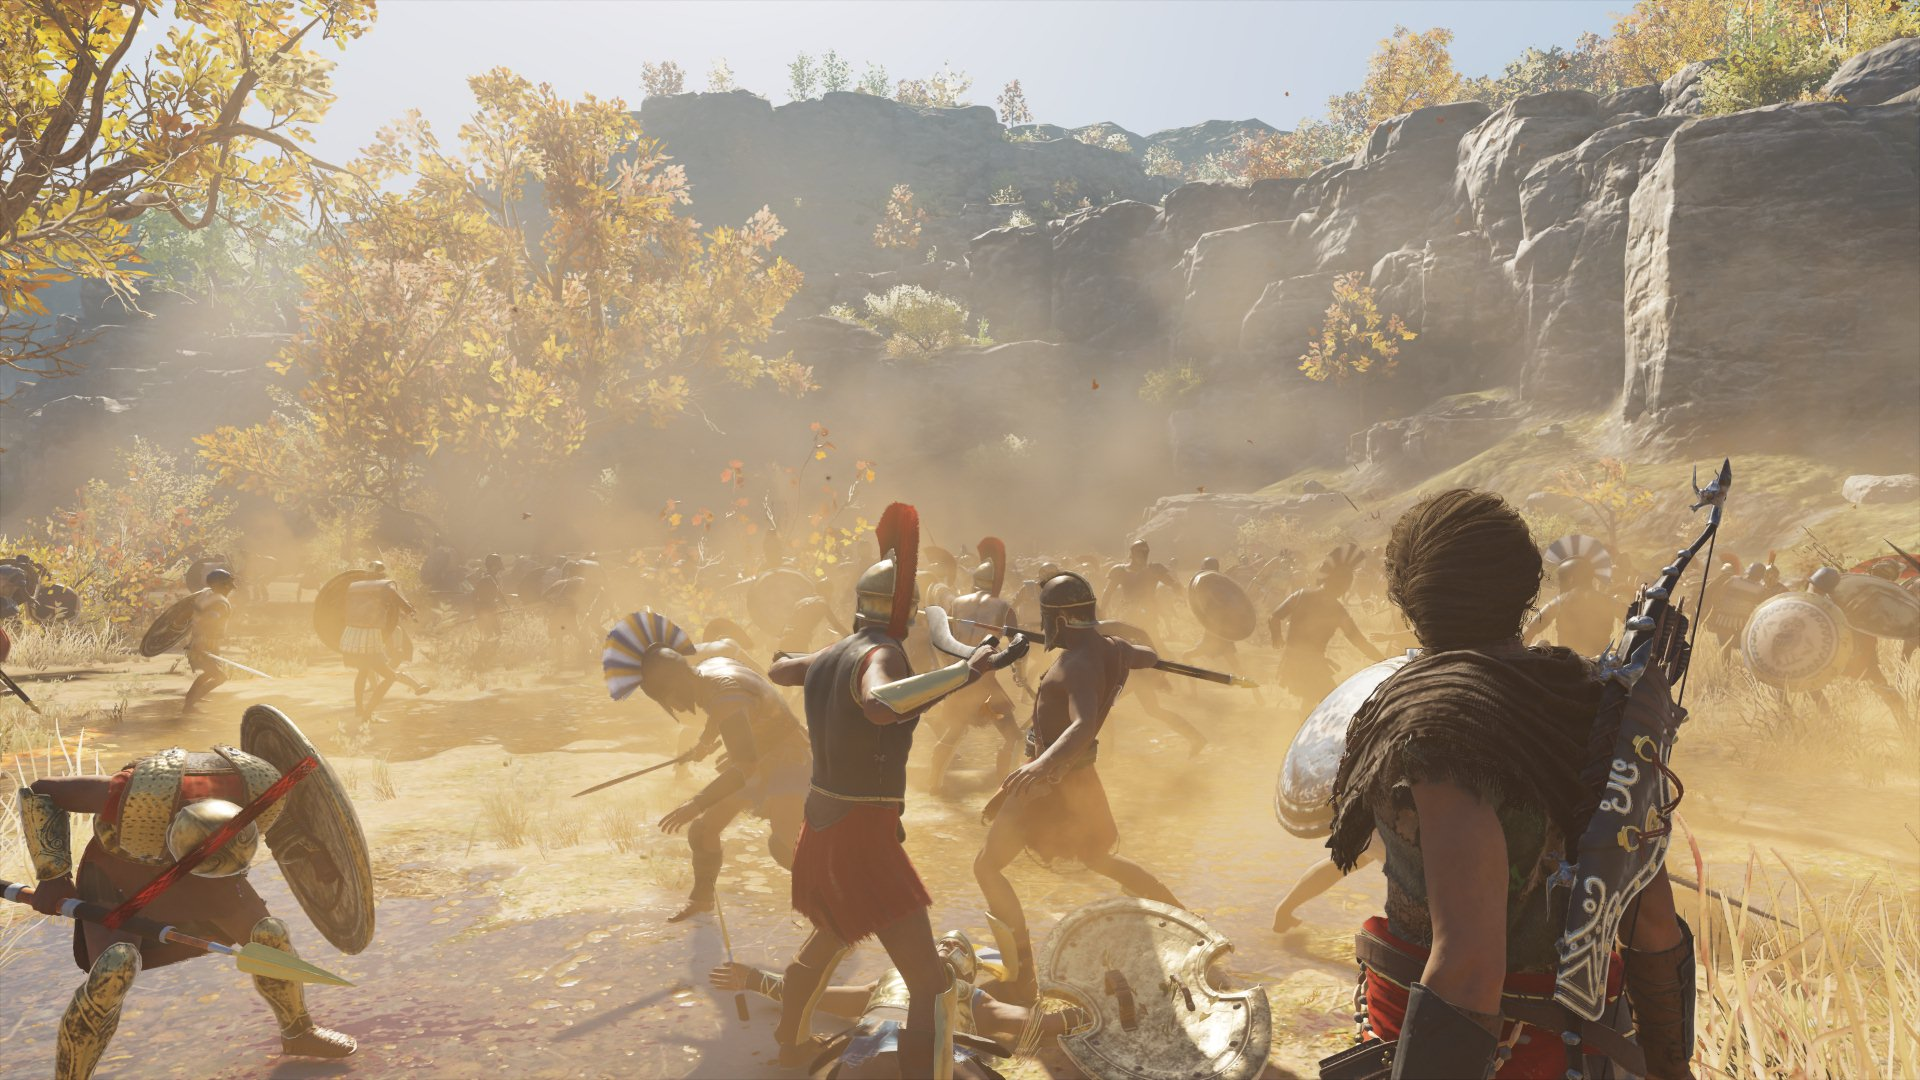 Assassin's Creed Odyssey falls far short of its own wondrous sandbox